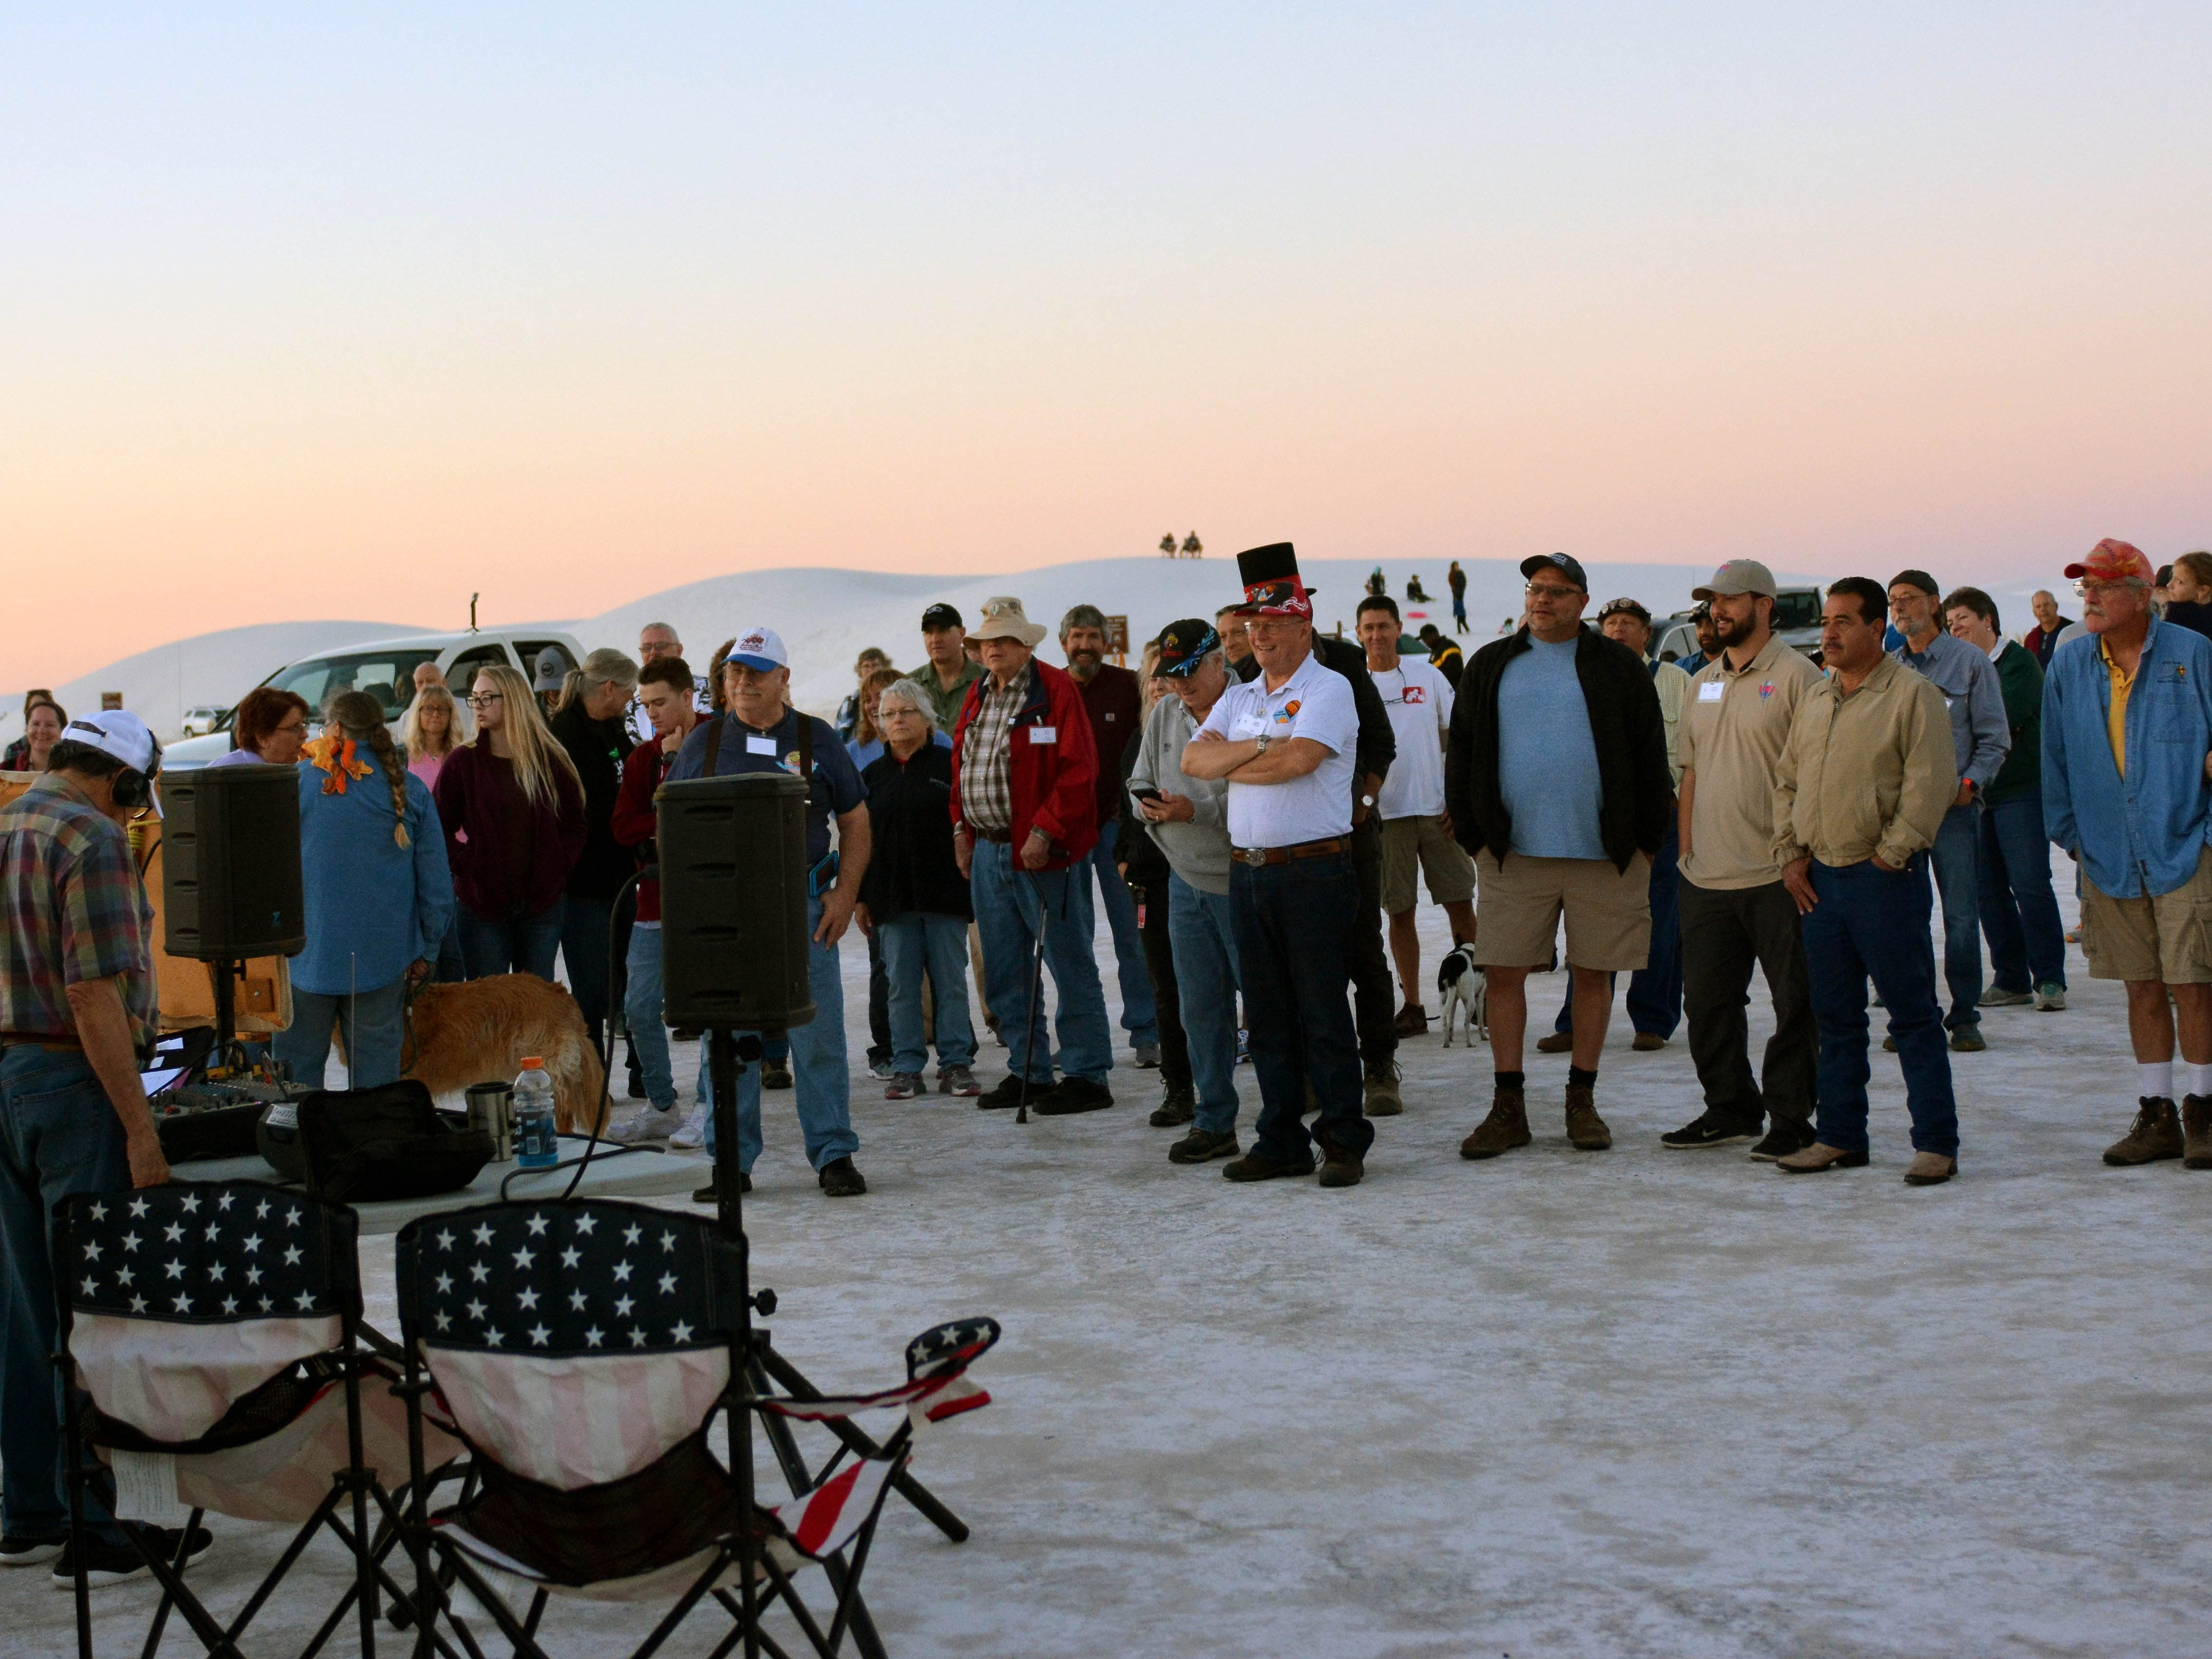 Pilots gather to hear the latest weather conditions before takeoff Saturday, Sept. 15, 2018 at the White Sands Balloon Invitational.